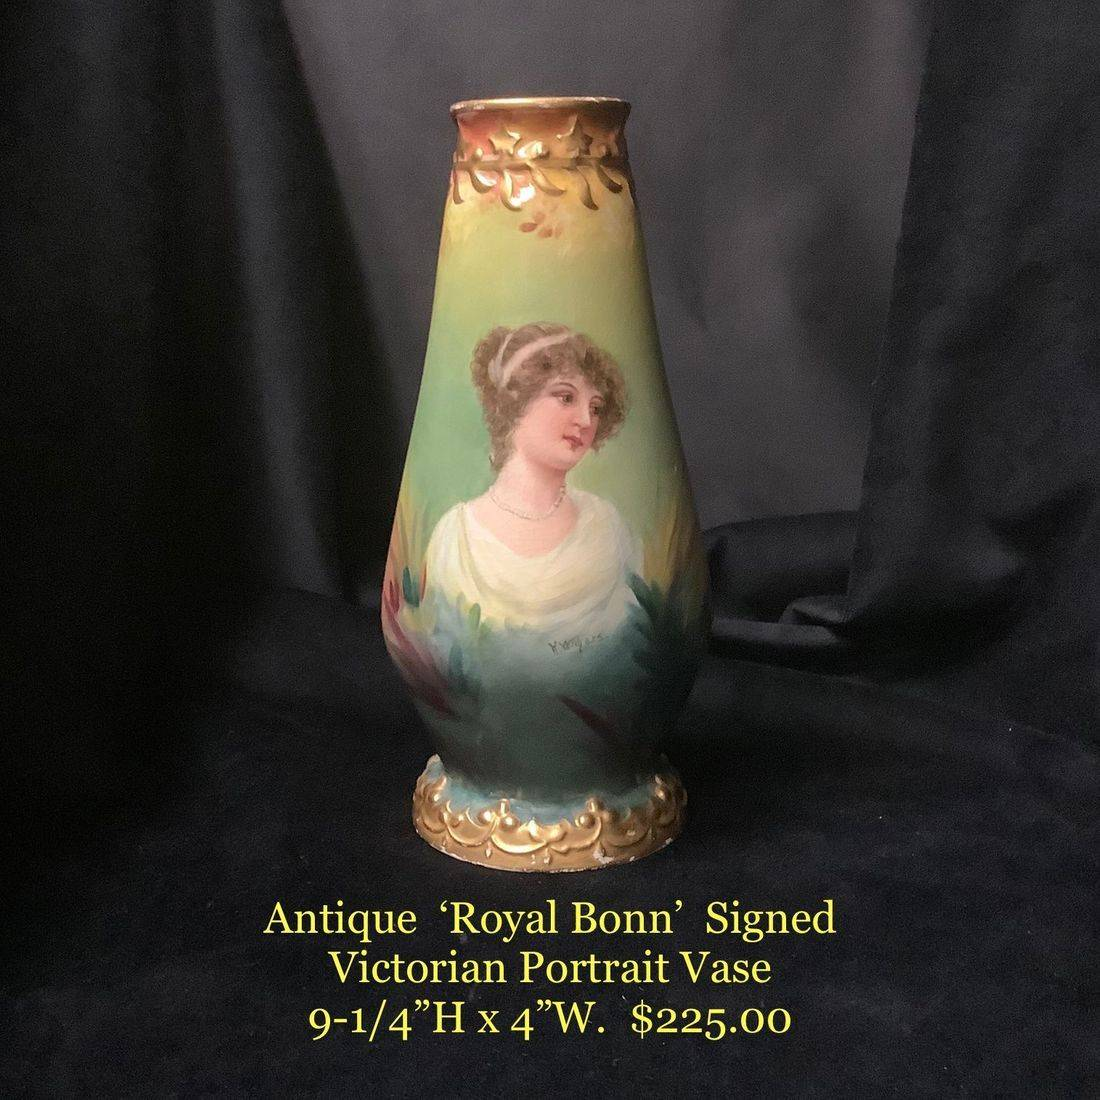 "Antique 'Royal Bonn' Signed Victorian Portrait Vase  9-1/4""H x 4""W.  $225.00"